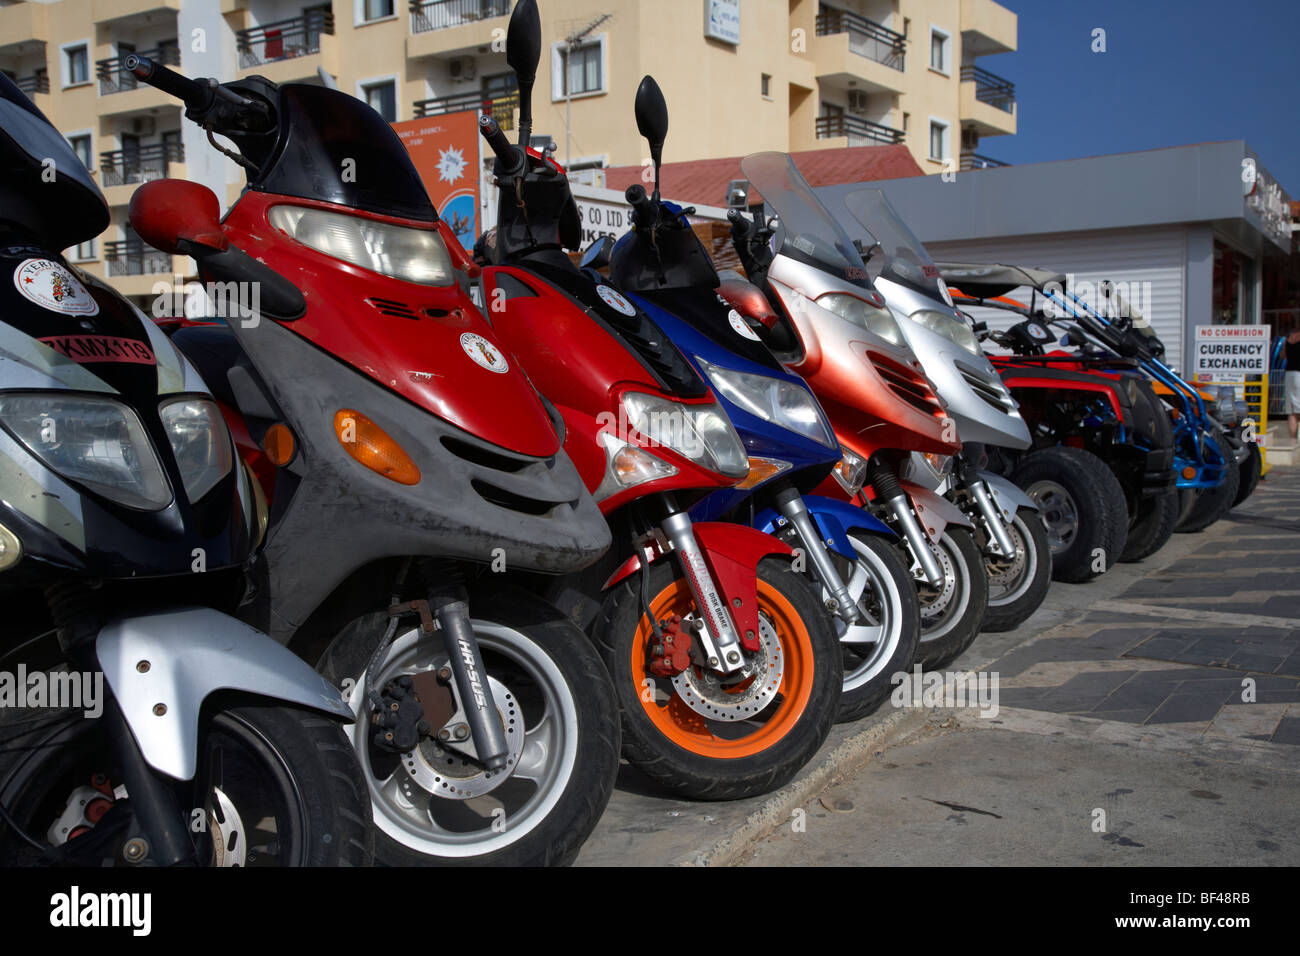 Scooters For Rent Stock Photos Amp Scooters For Rent Stock